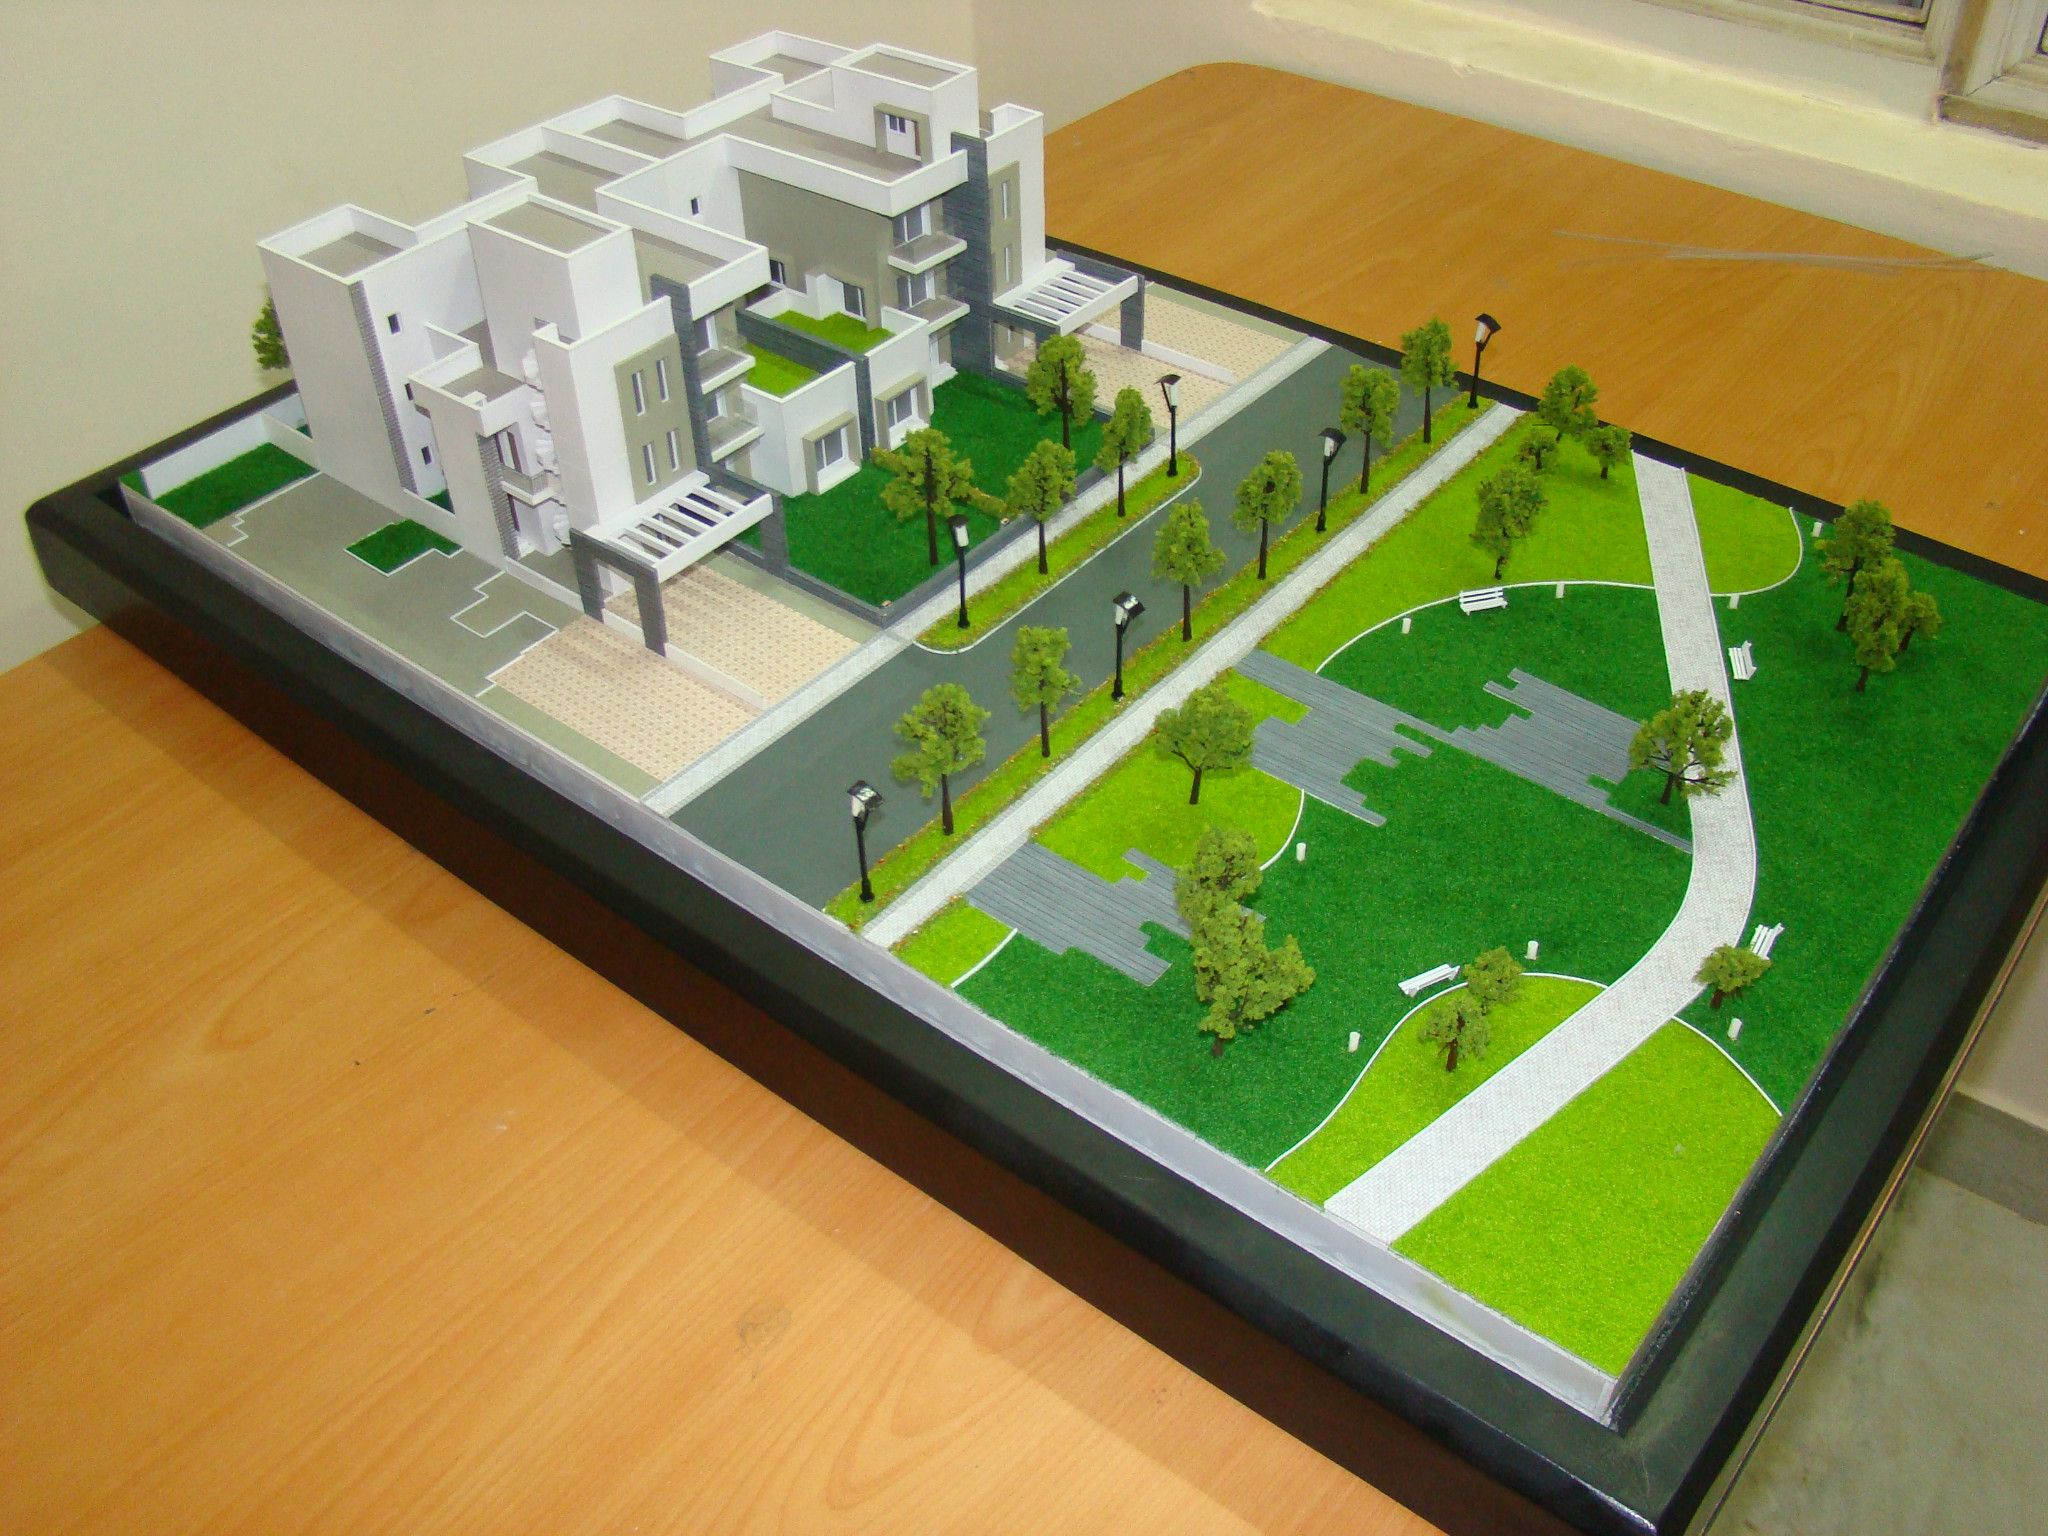 Picture Book Illustration Making An Architectural Model: Suppliers Of ARCHITECTURAL MODELS Making Material